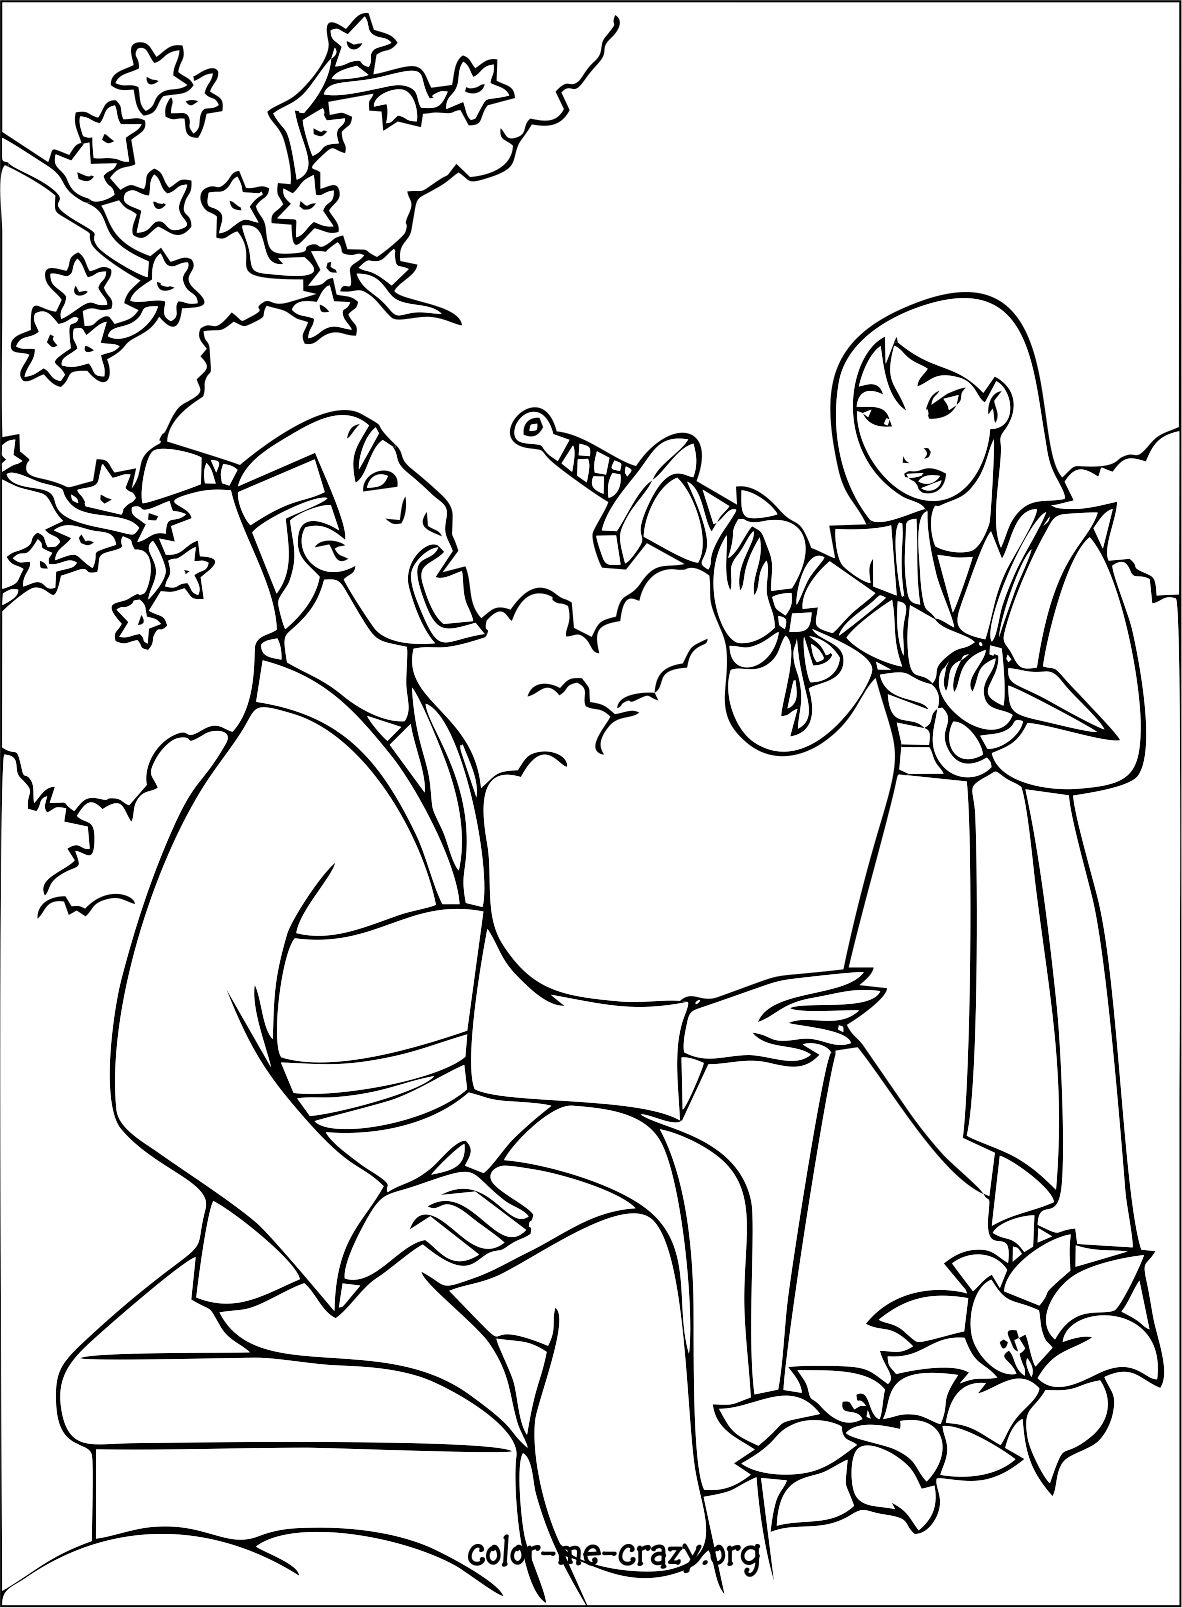 Mulan Coloring Page | Arts | Pinterest | Colorear, Dibujo y Disney